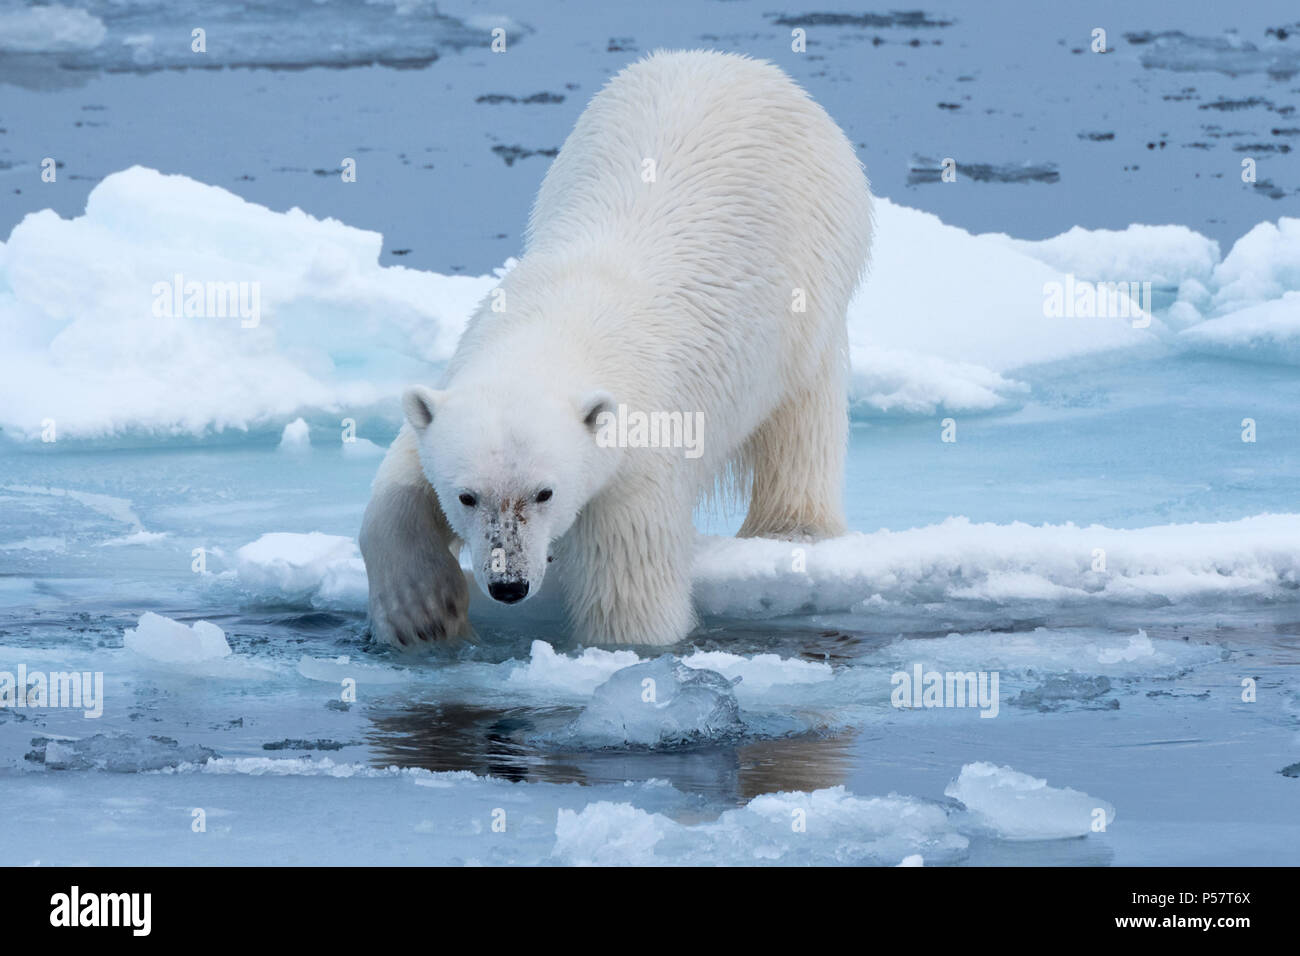 Polar Bear tentatively entering the water - Stock Image